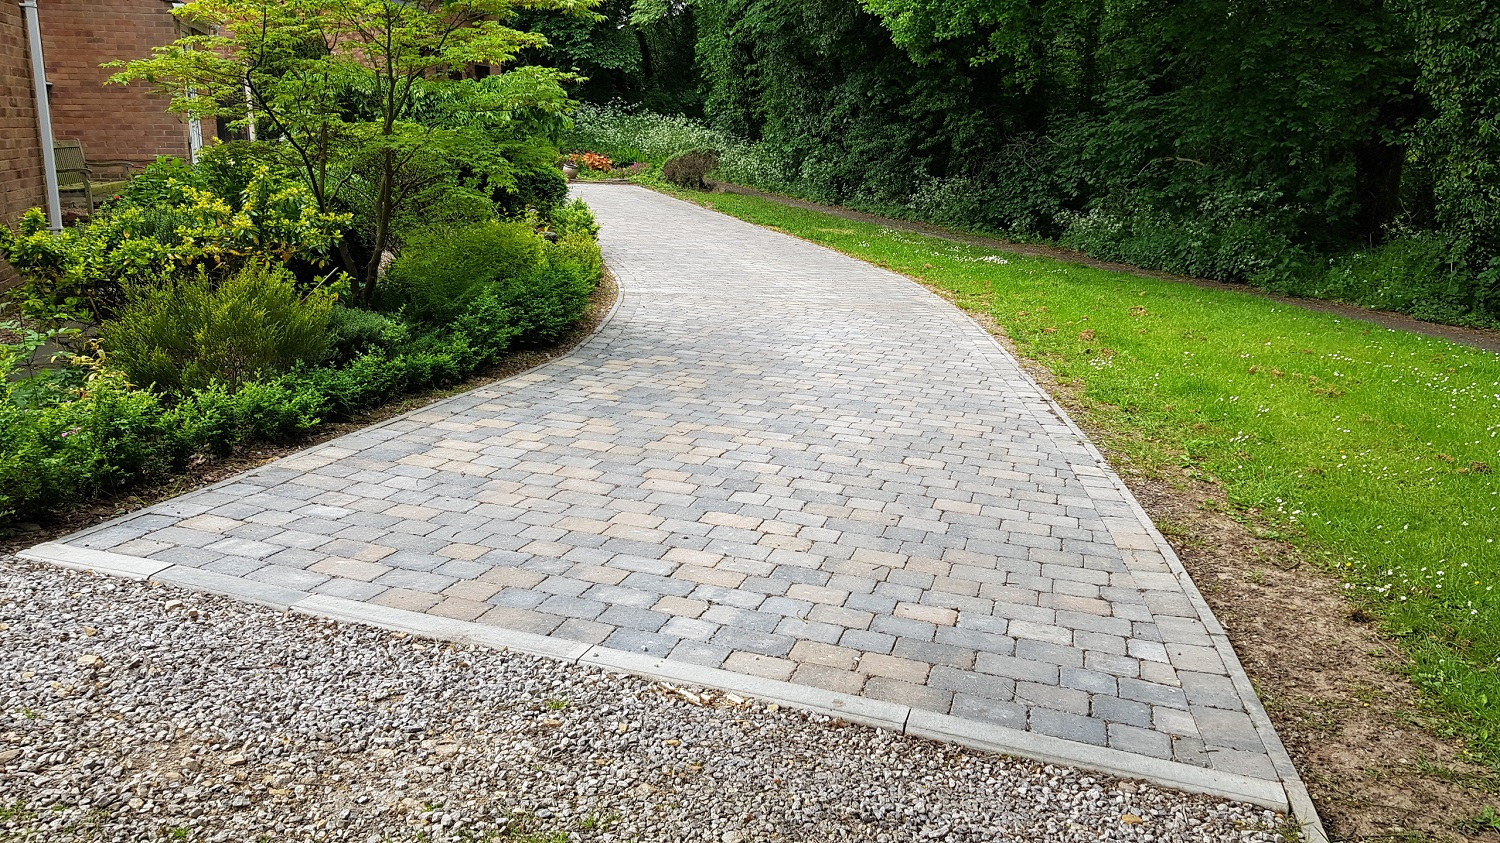 C25 Plaspave Sorrento Granite Stone and Sarsen Stone Block Paving Driveway at Linacre Woods in Chest